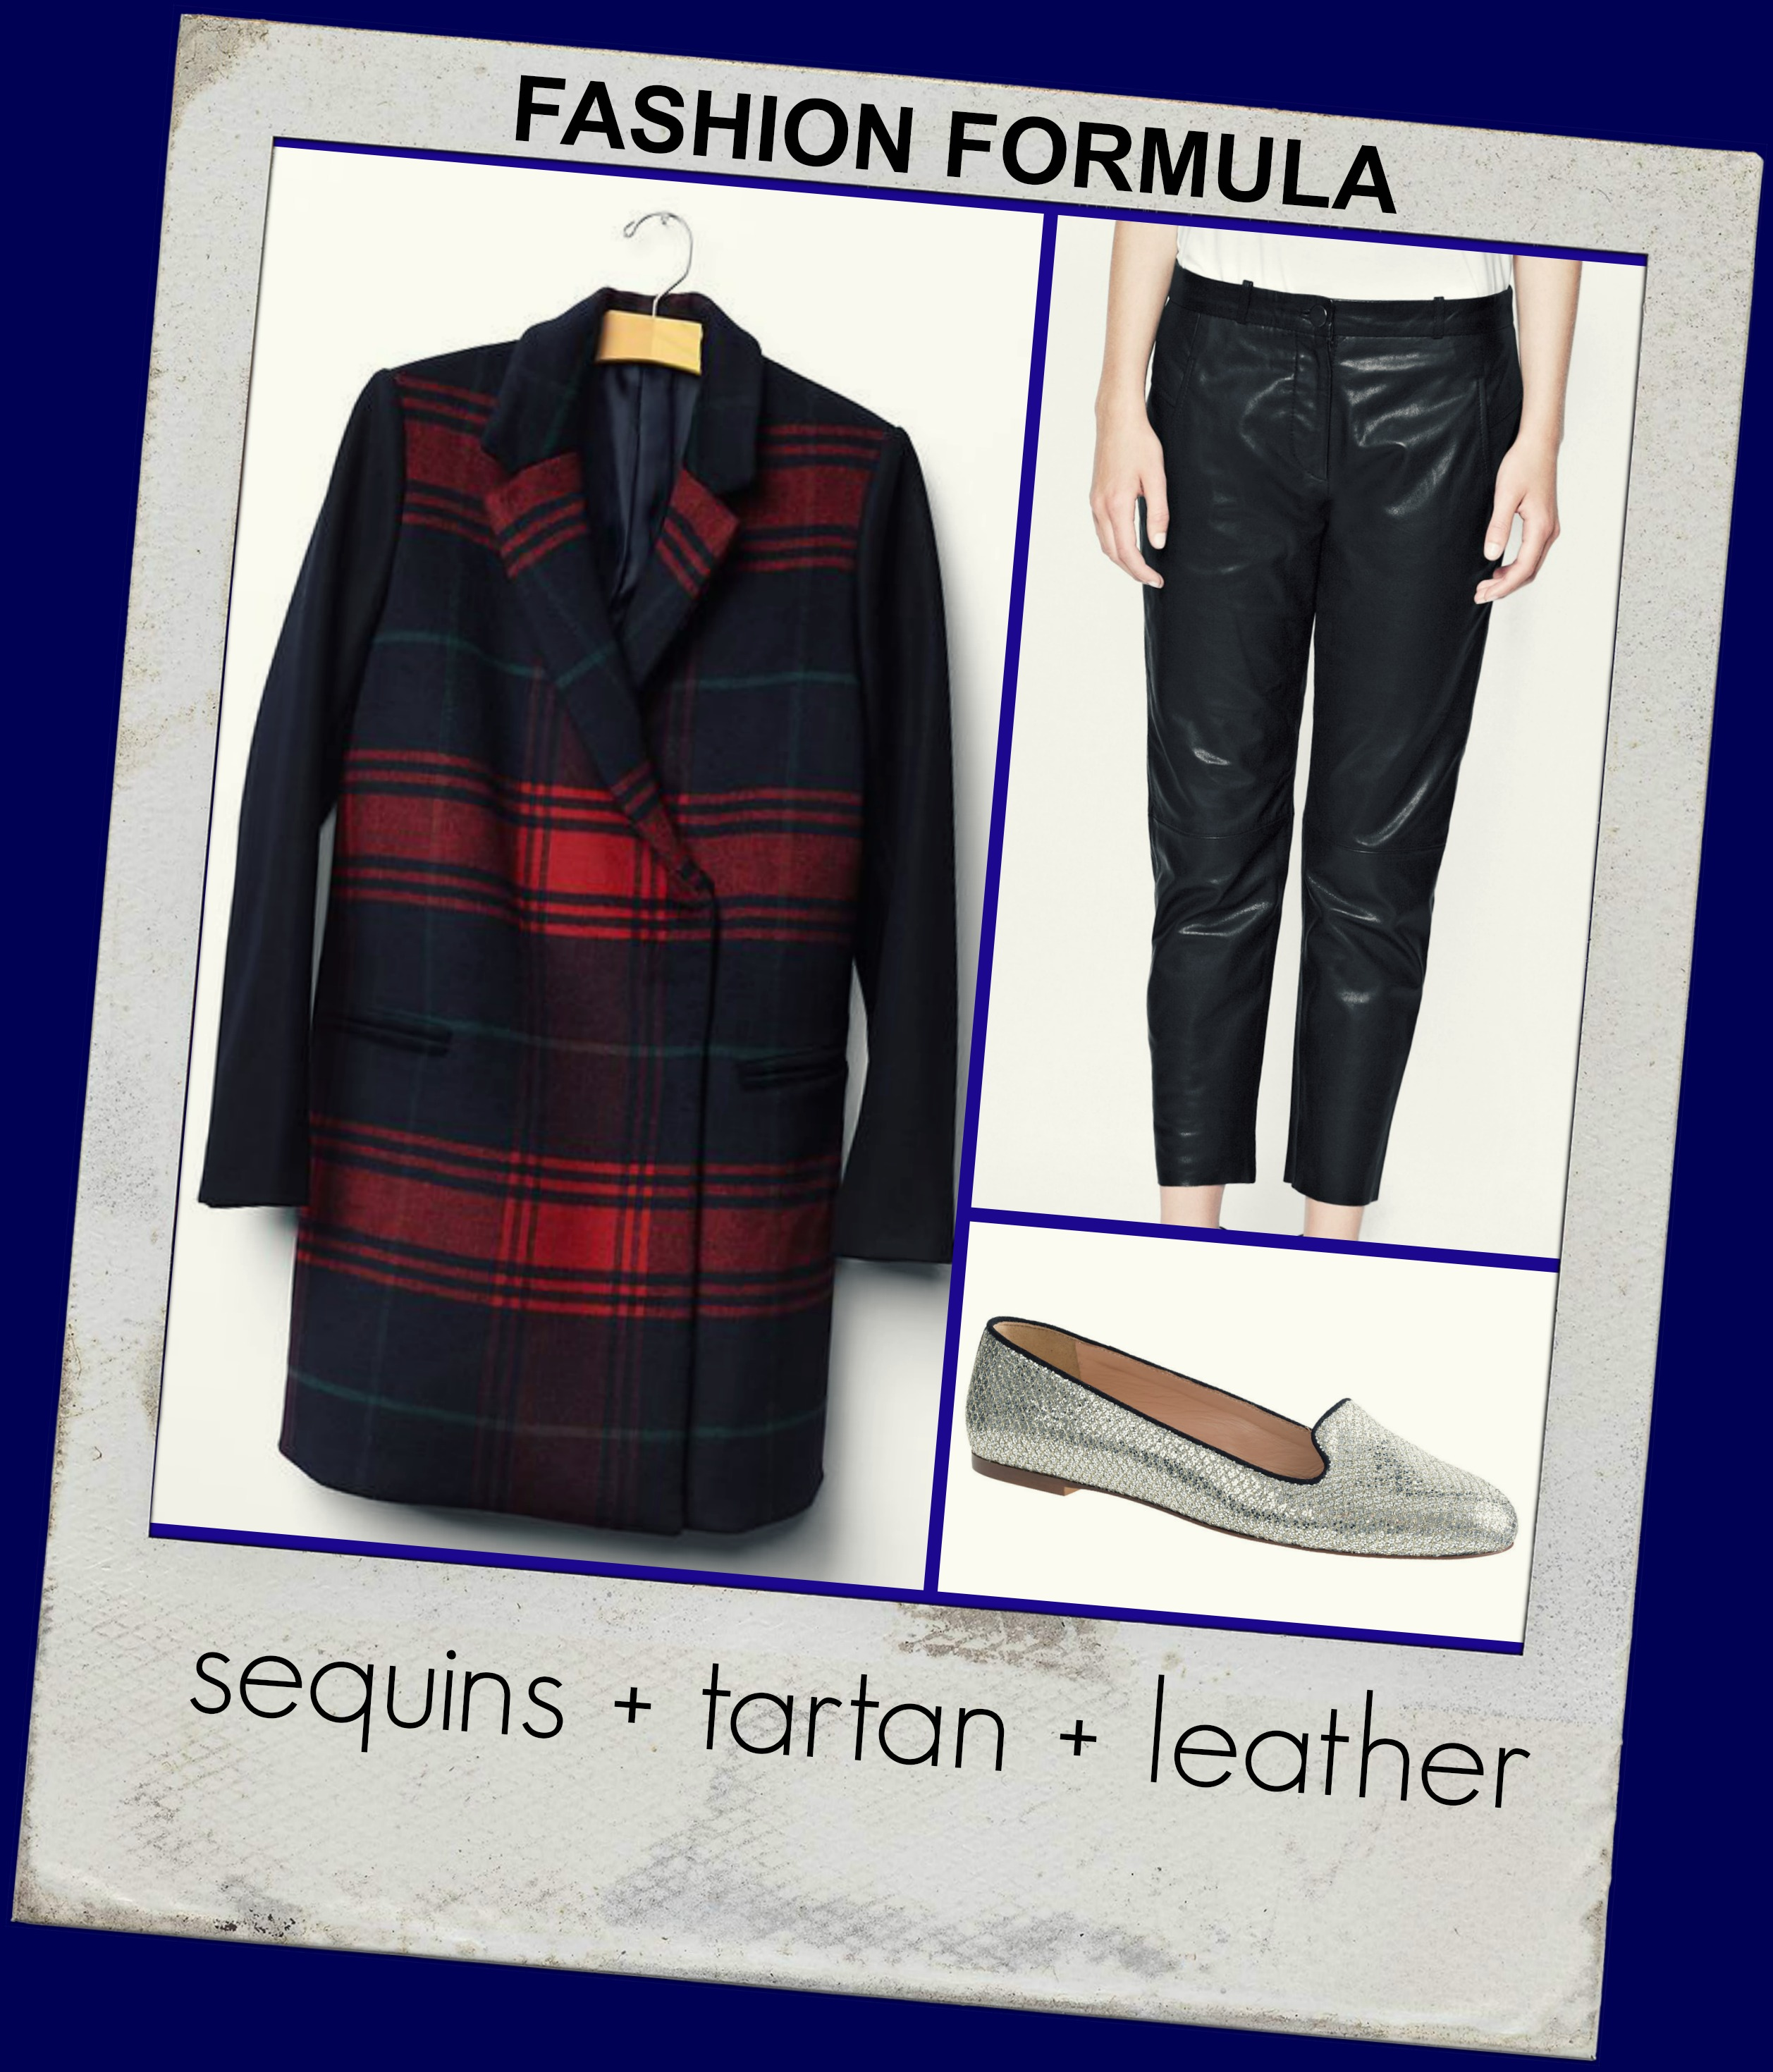 Fashion formula: sequins tartan leather